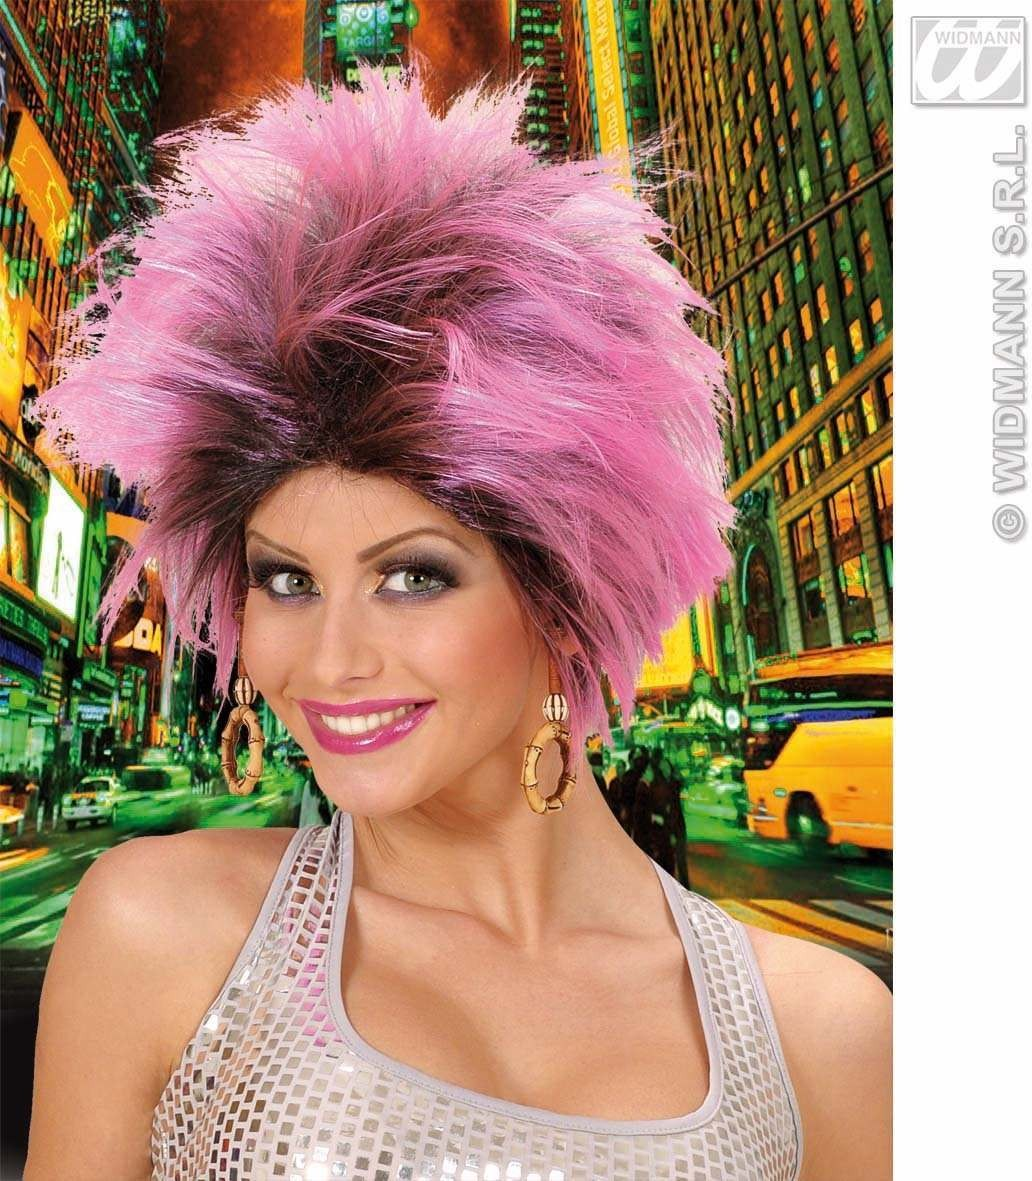 Urban Vibe Wig W/Earrings - Pink/Black - Fancy Dress